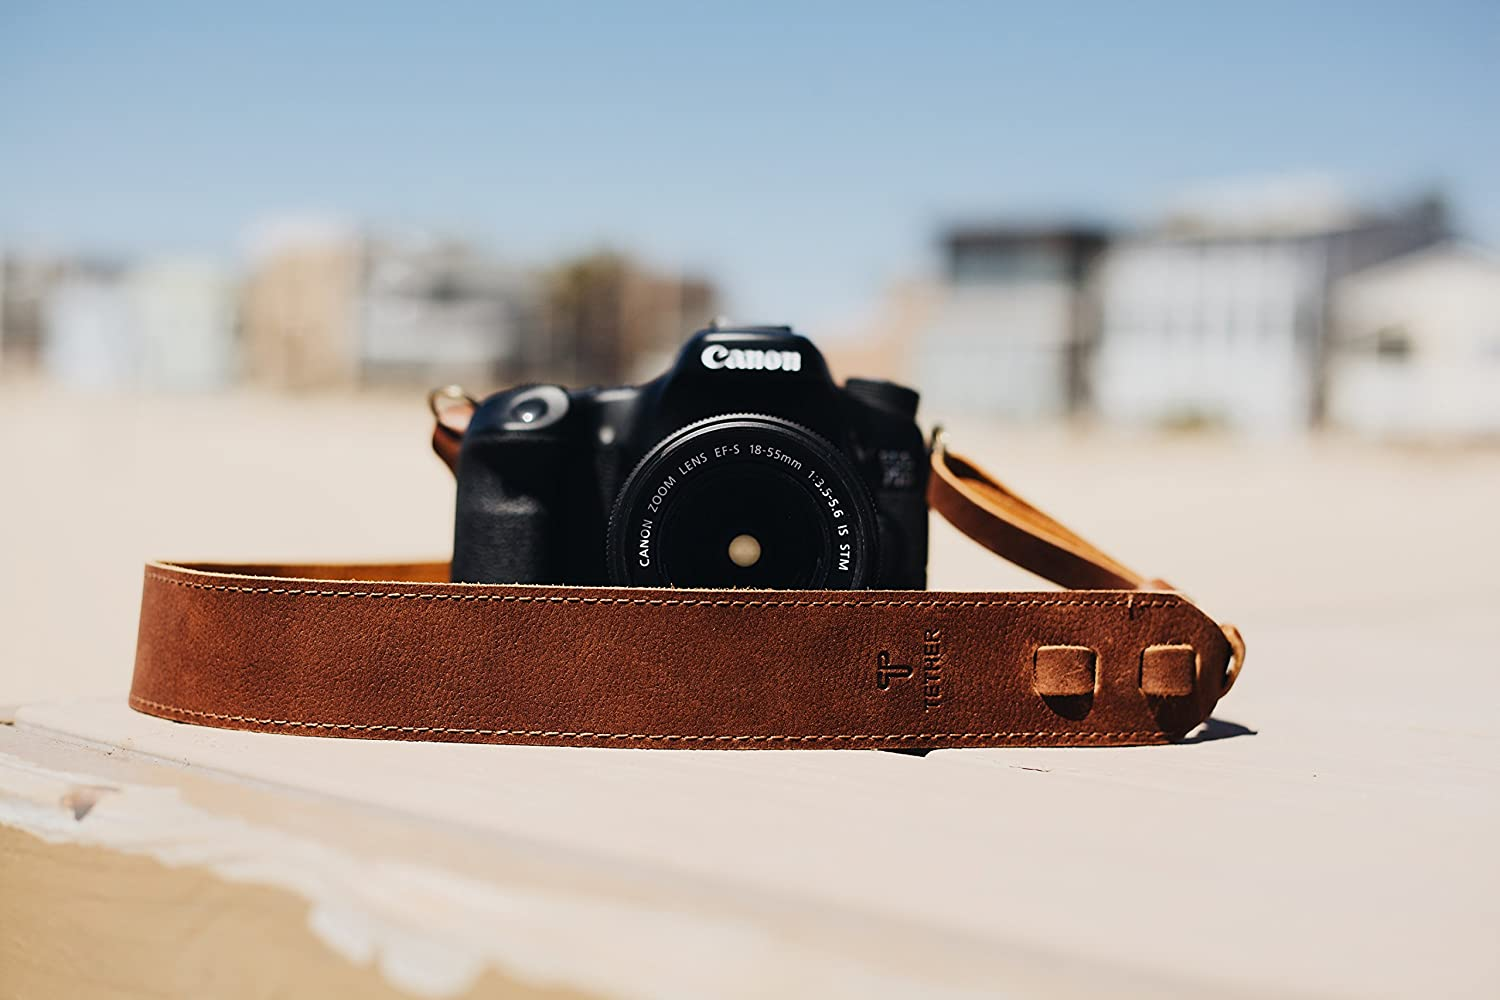 CAM-IN Real Leather Micro Single SLR Camera Strap(Brown)